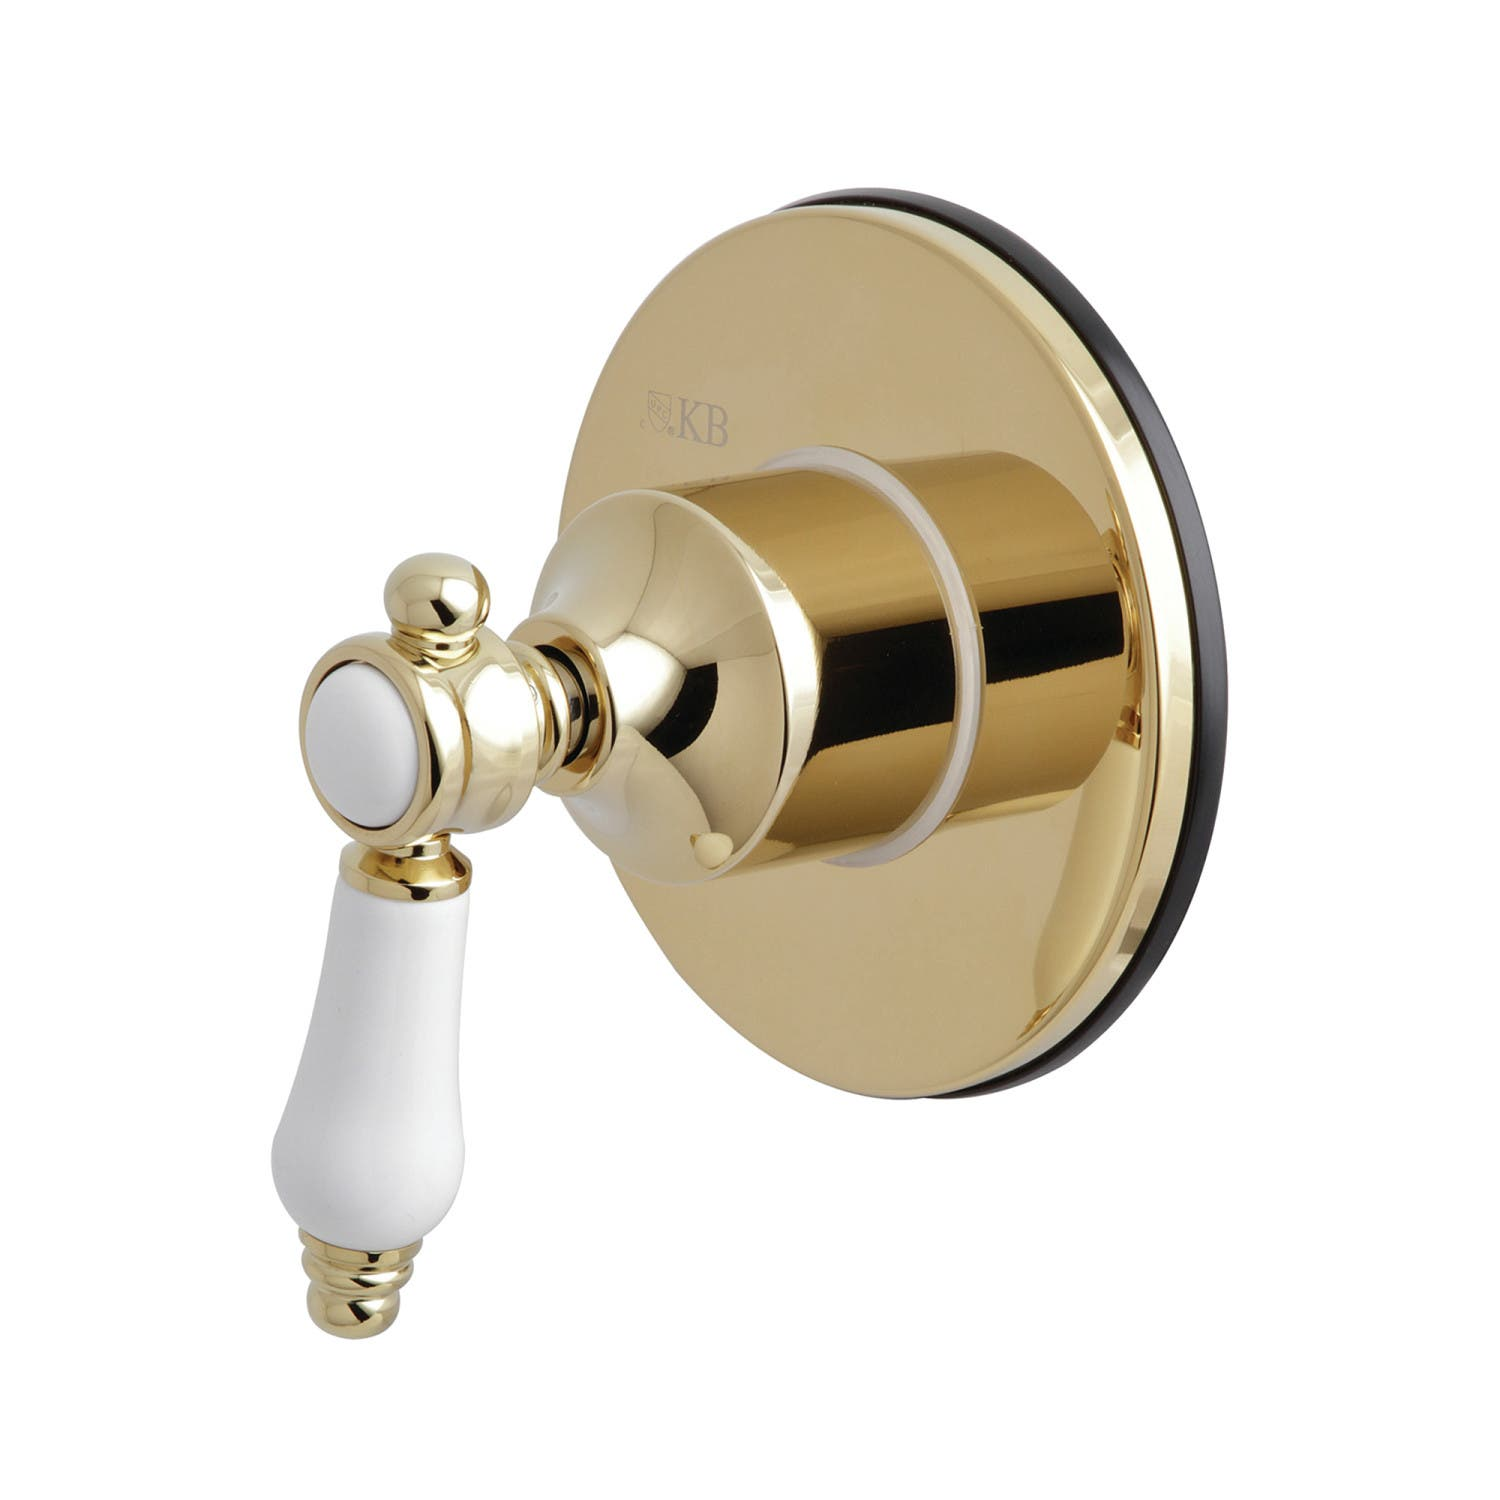 Kingston Brass KS3032BPL Three-Way Diverter Valve with Single-Handle and Round Plate, Polished Brass